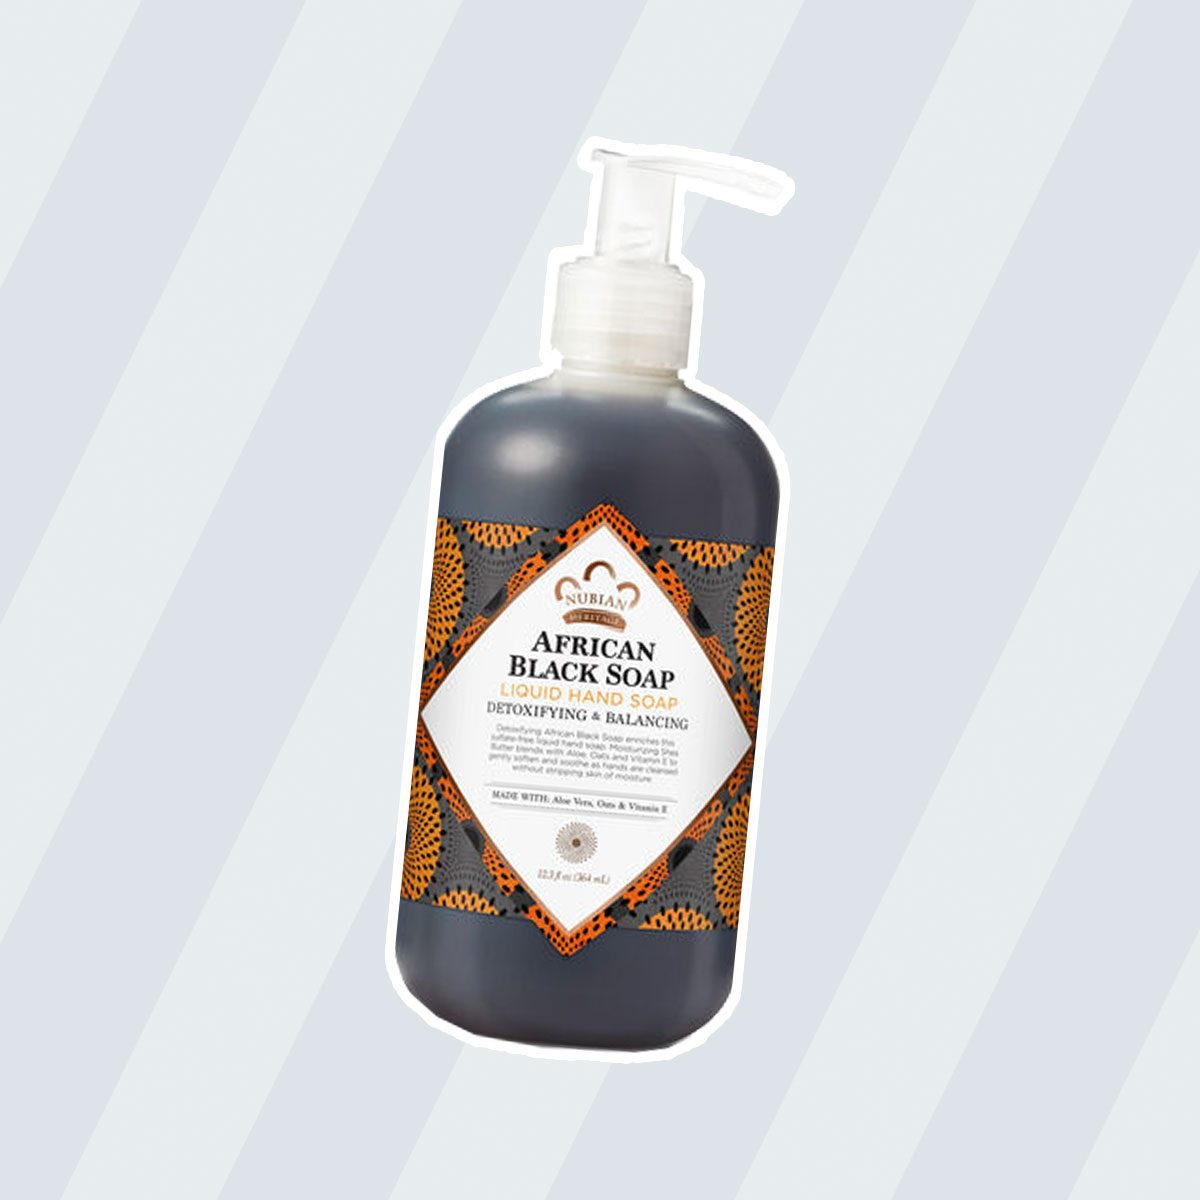 AFRICAN BLACK SOAP LIQUID HAND SOAP